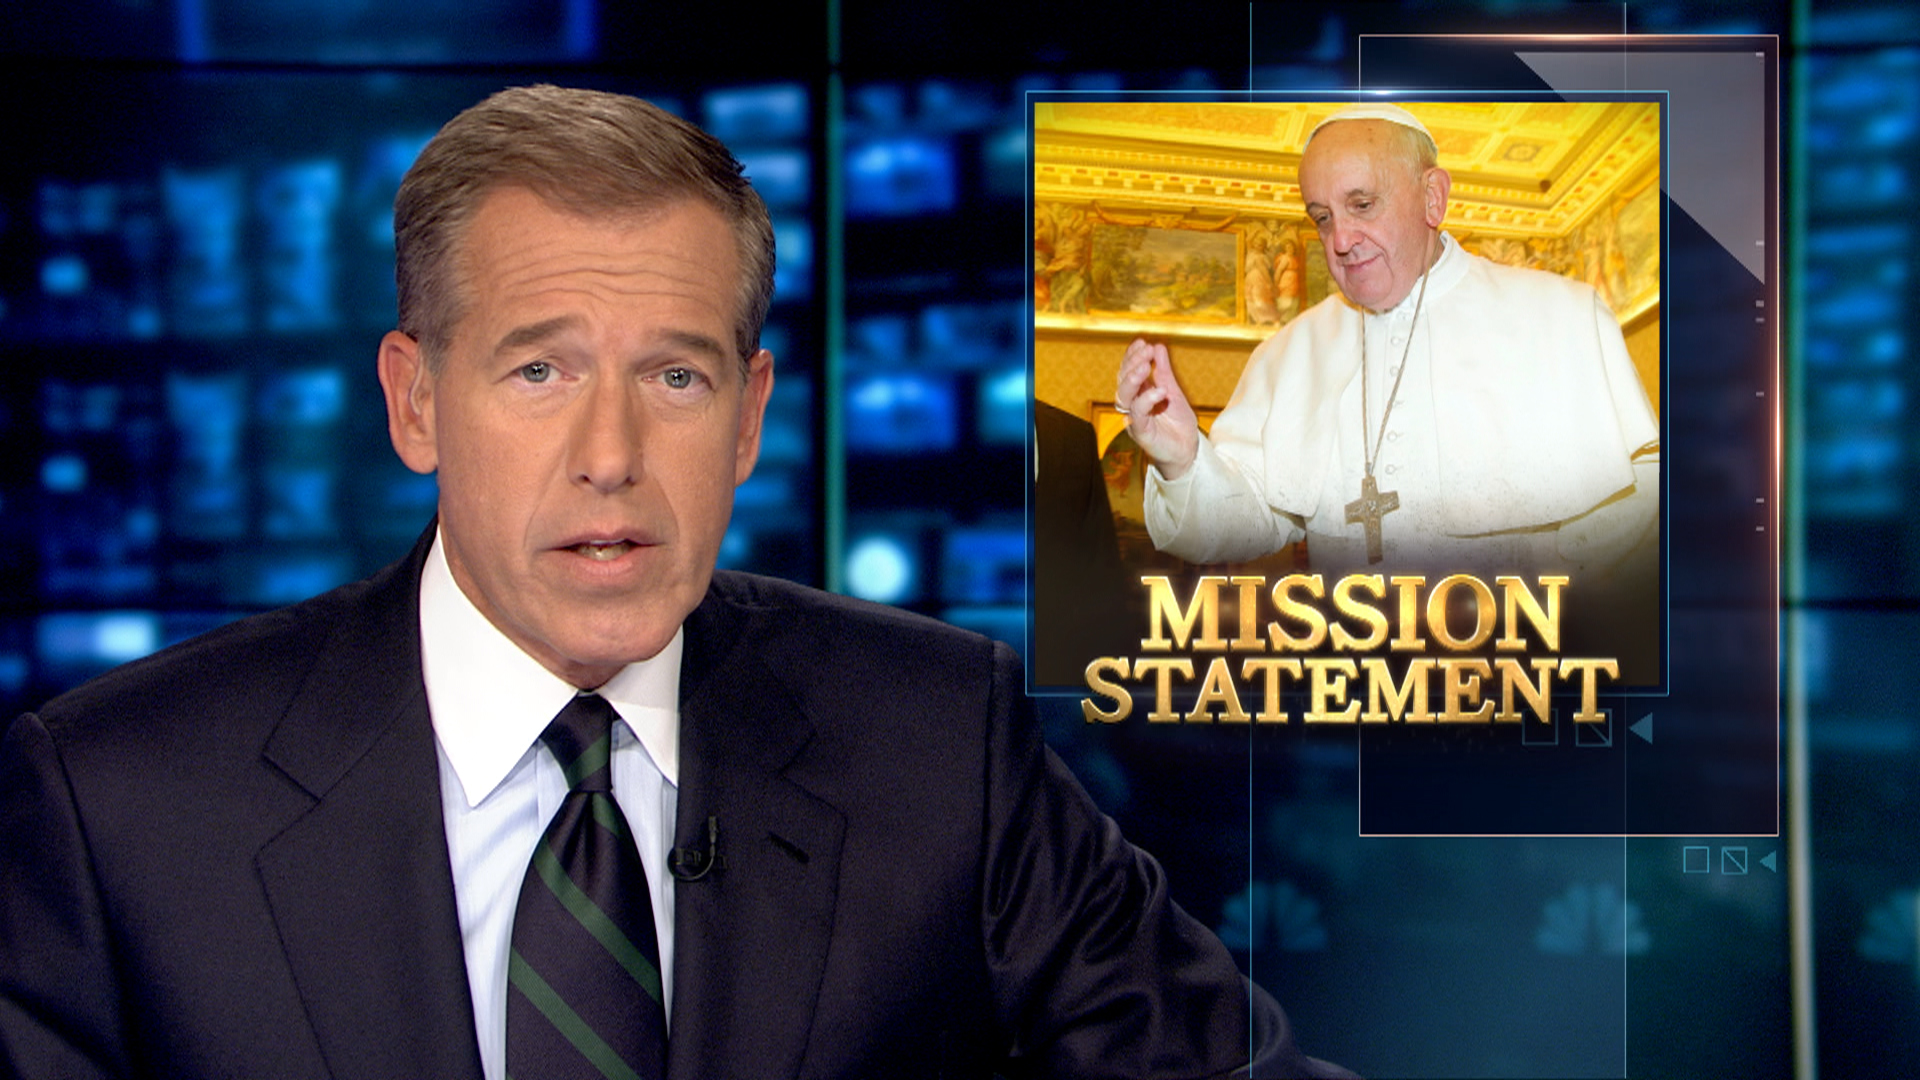 Pope issues mission statement for papacy - news.yahoo.com